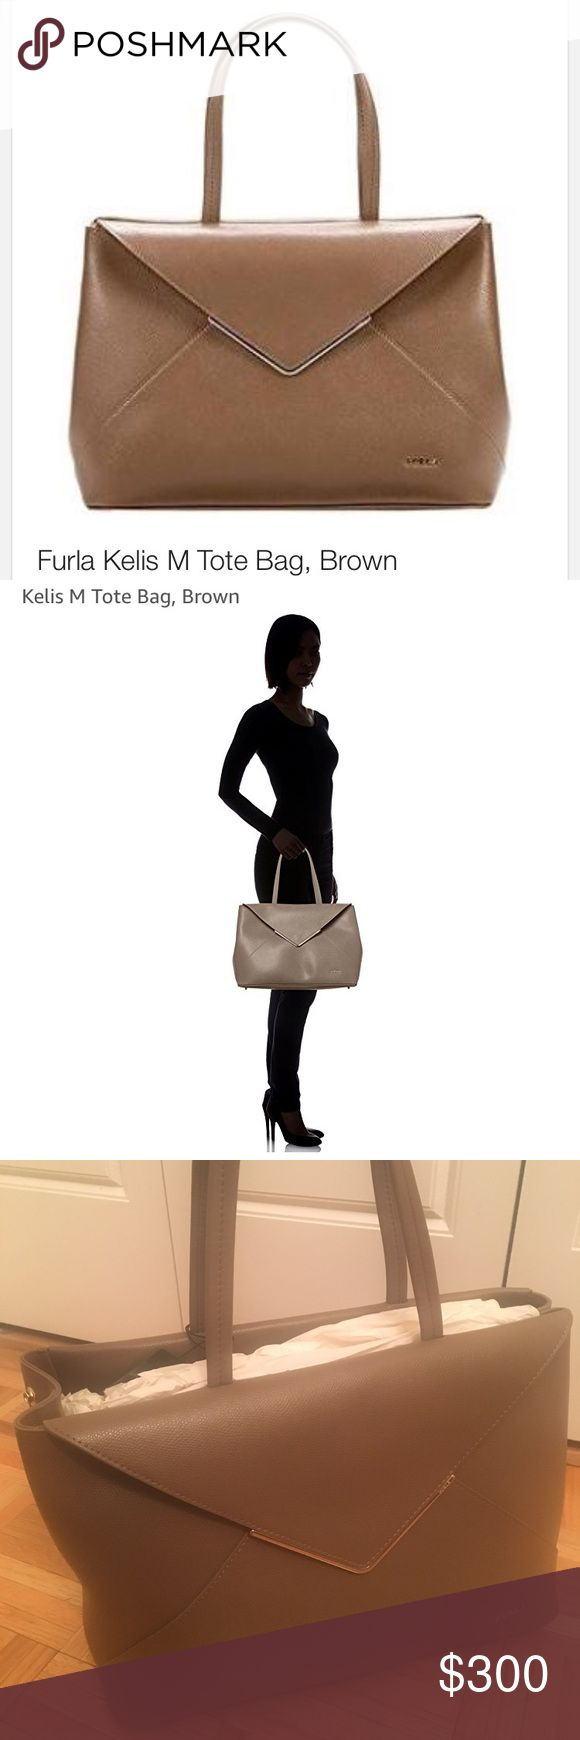 Furla Kelis Medium Tote Brand new with tags! Never used. Gorgeous tote for work or play  Medium sized tan tone with gold accents. Fits over shoulder Furla Bags Shoulder Bags